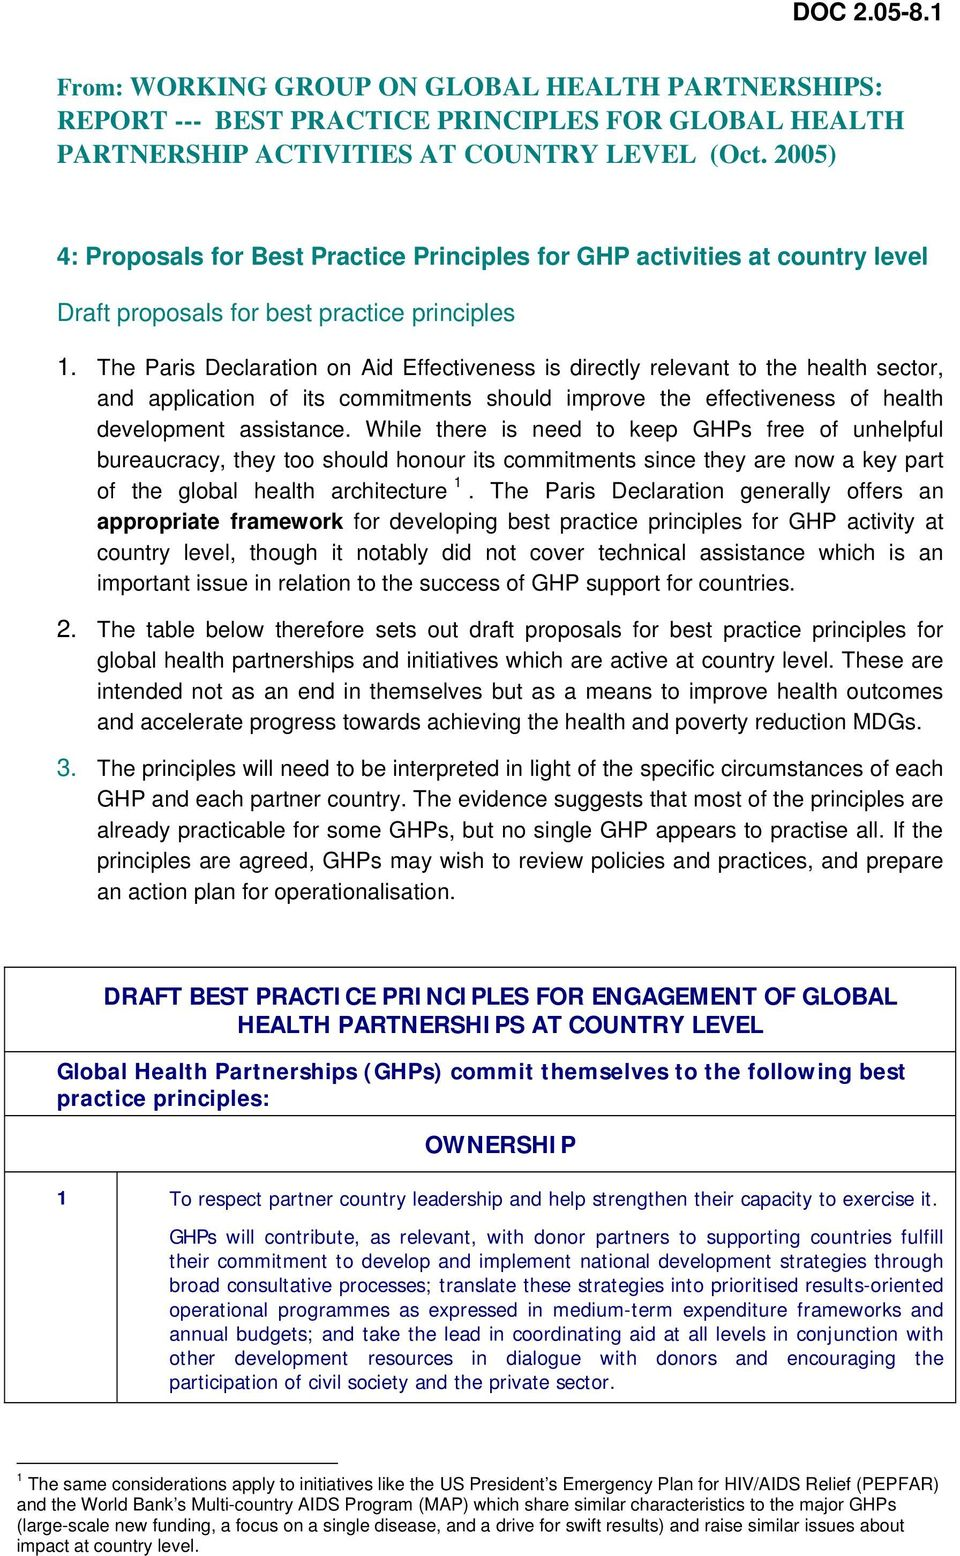 The Paris Declaration on Aid Effectiveness is directly relevant to the health sector, and application of its commitments should improve the effectiveness of health development assistance.